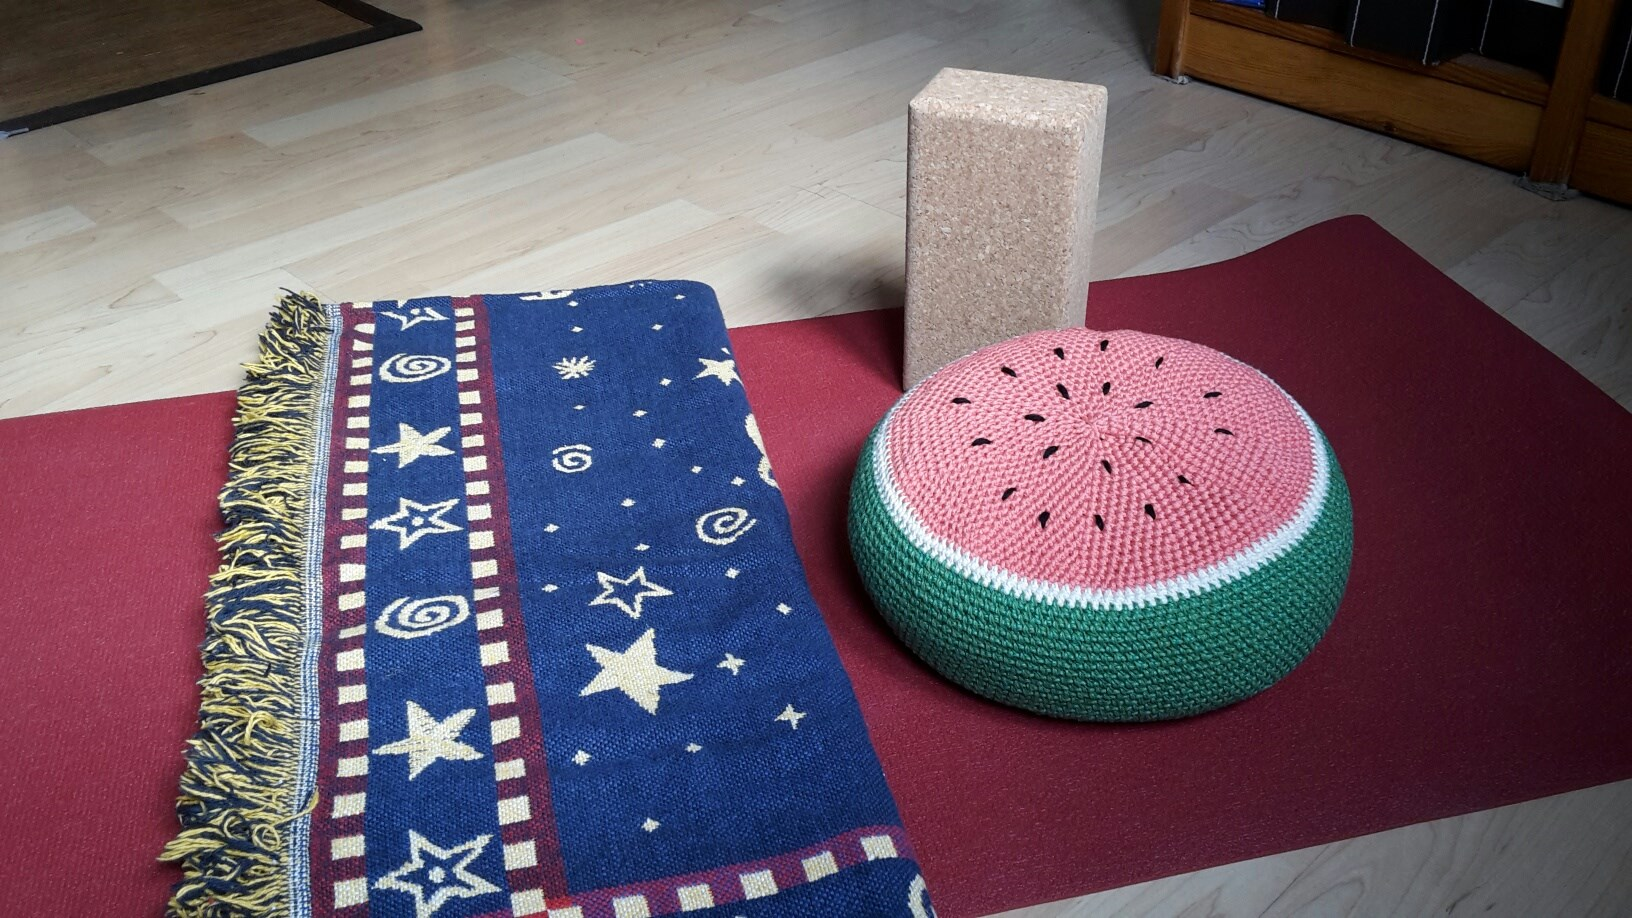 Inspired by your tutti frutti potholder - it came to be a meditation cushion.